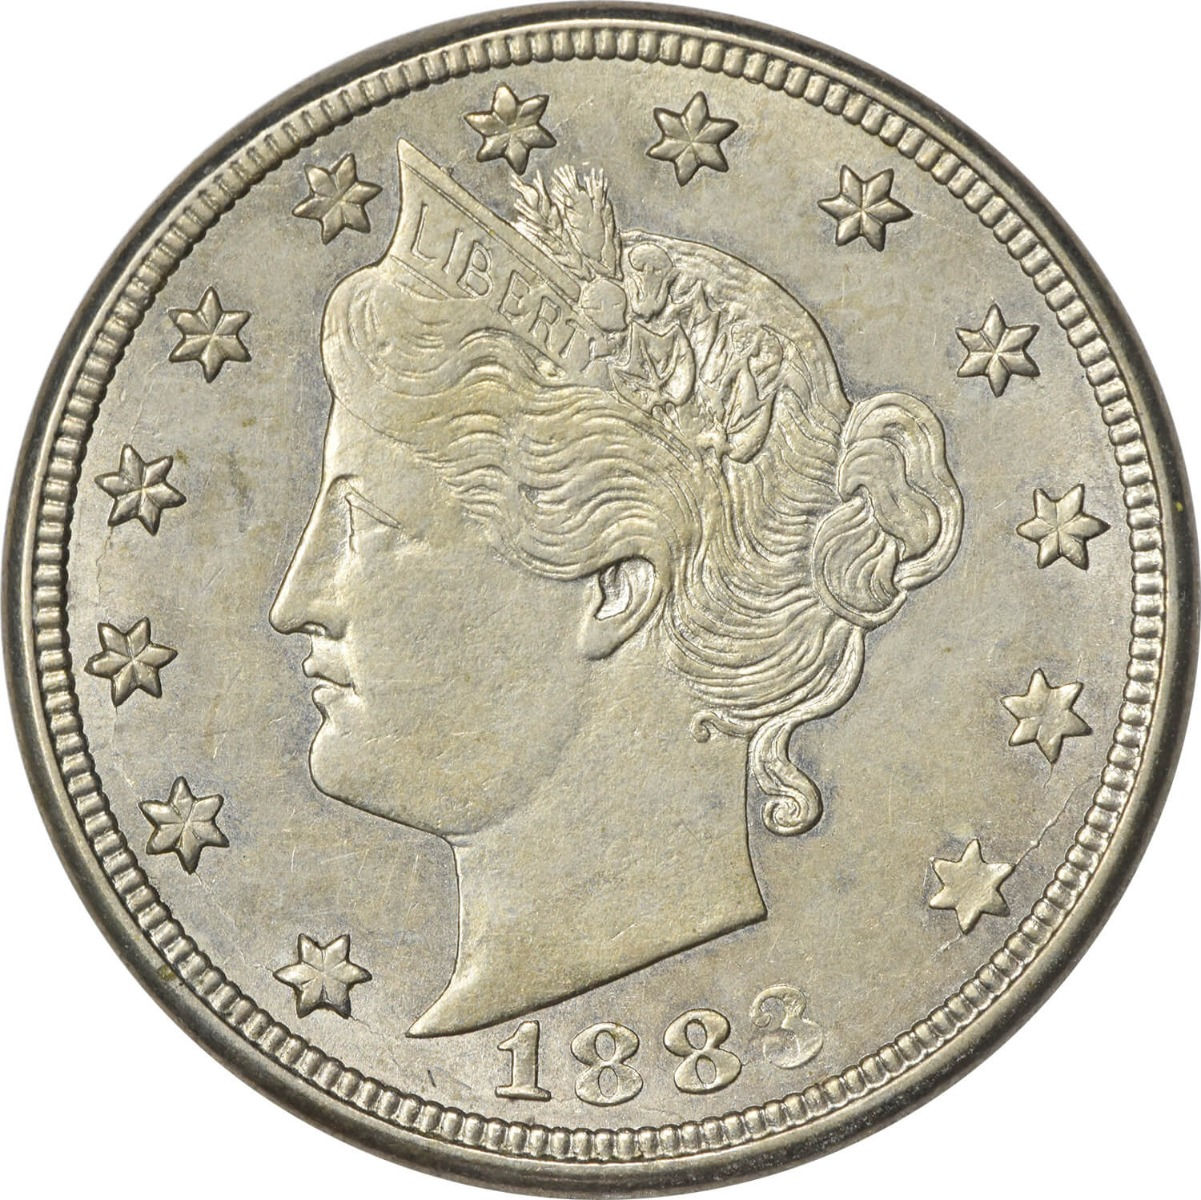 1883 Liberty Nickel With Cents Choice AU Uncertified